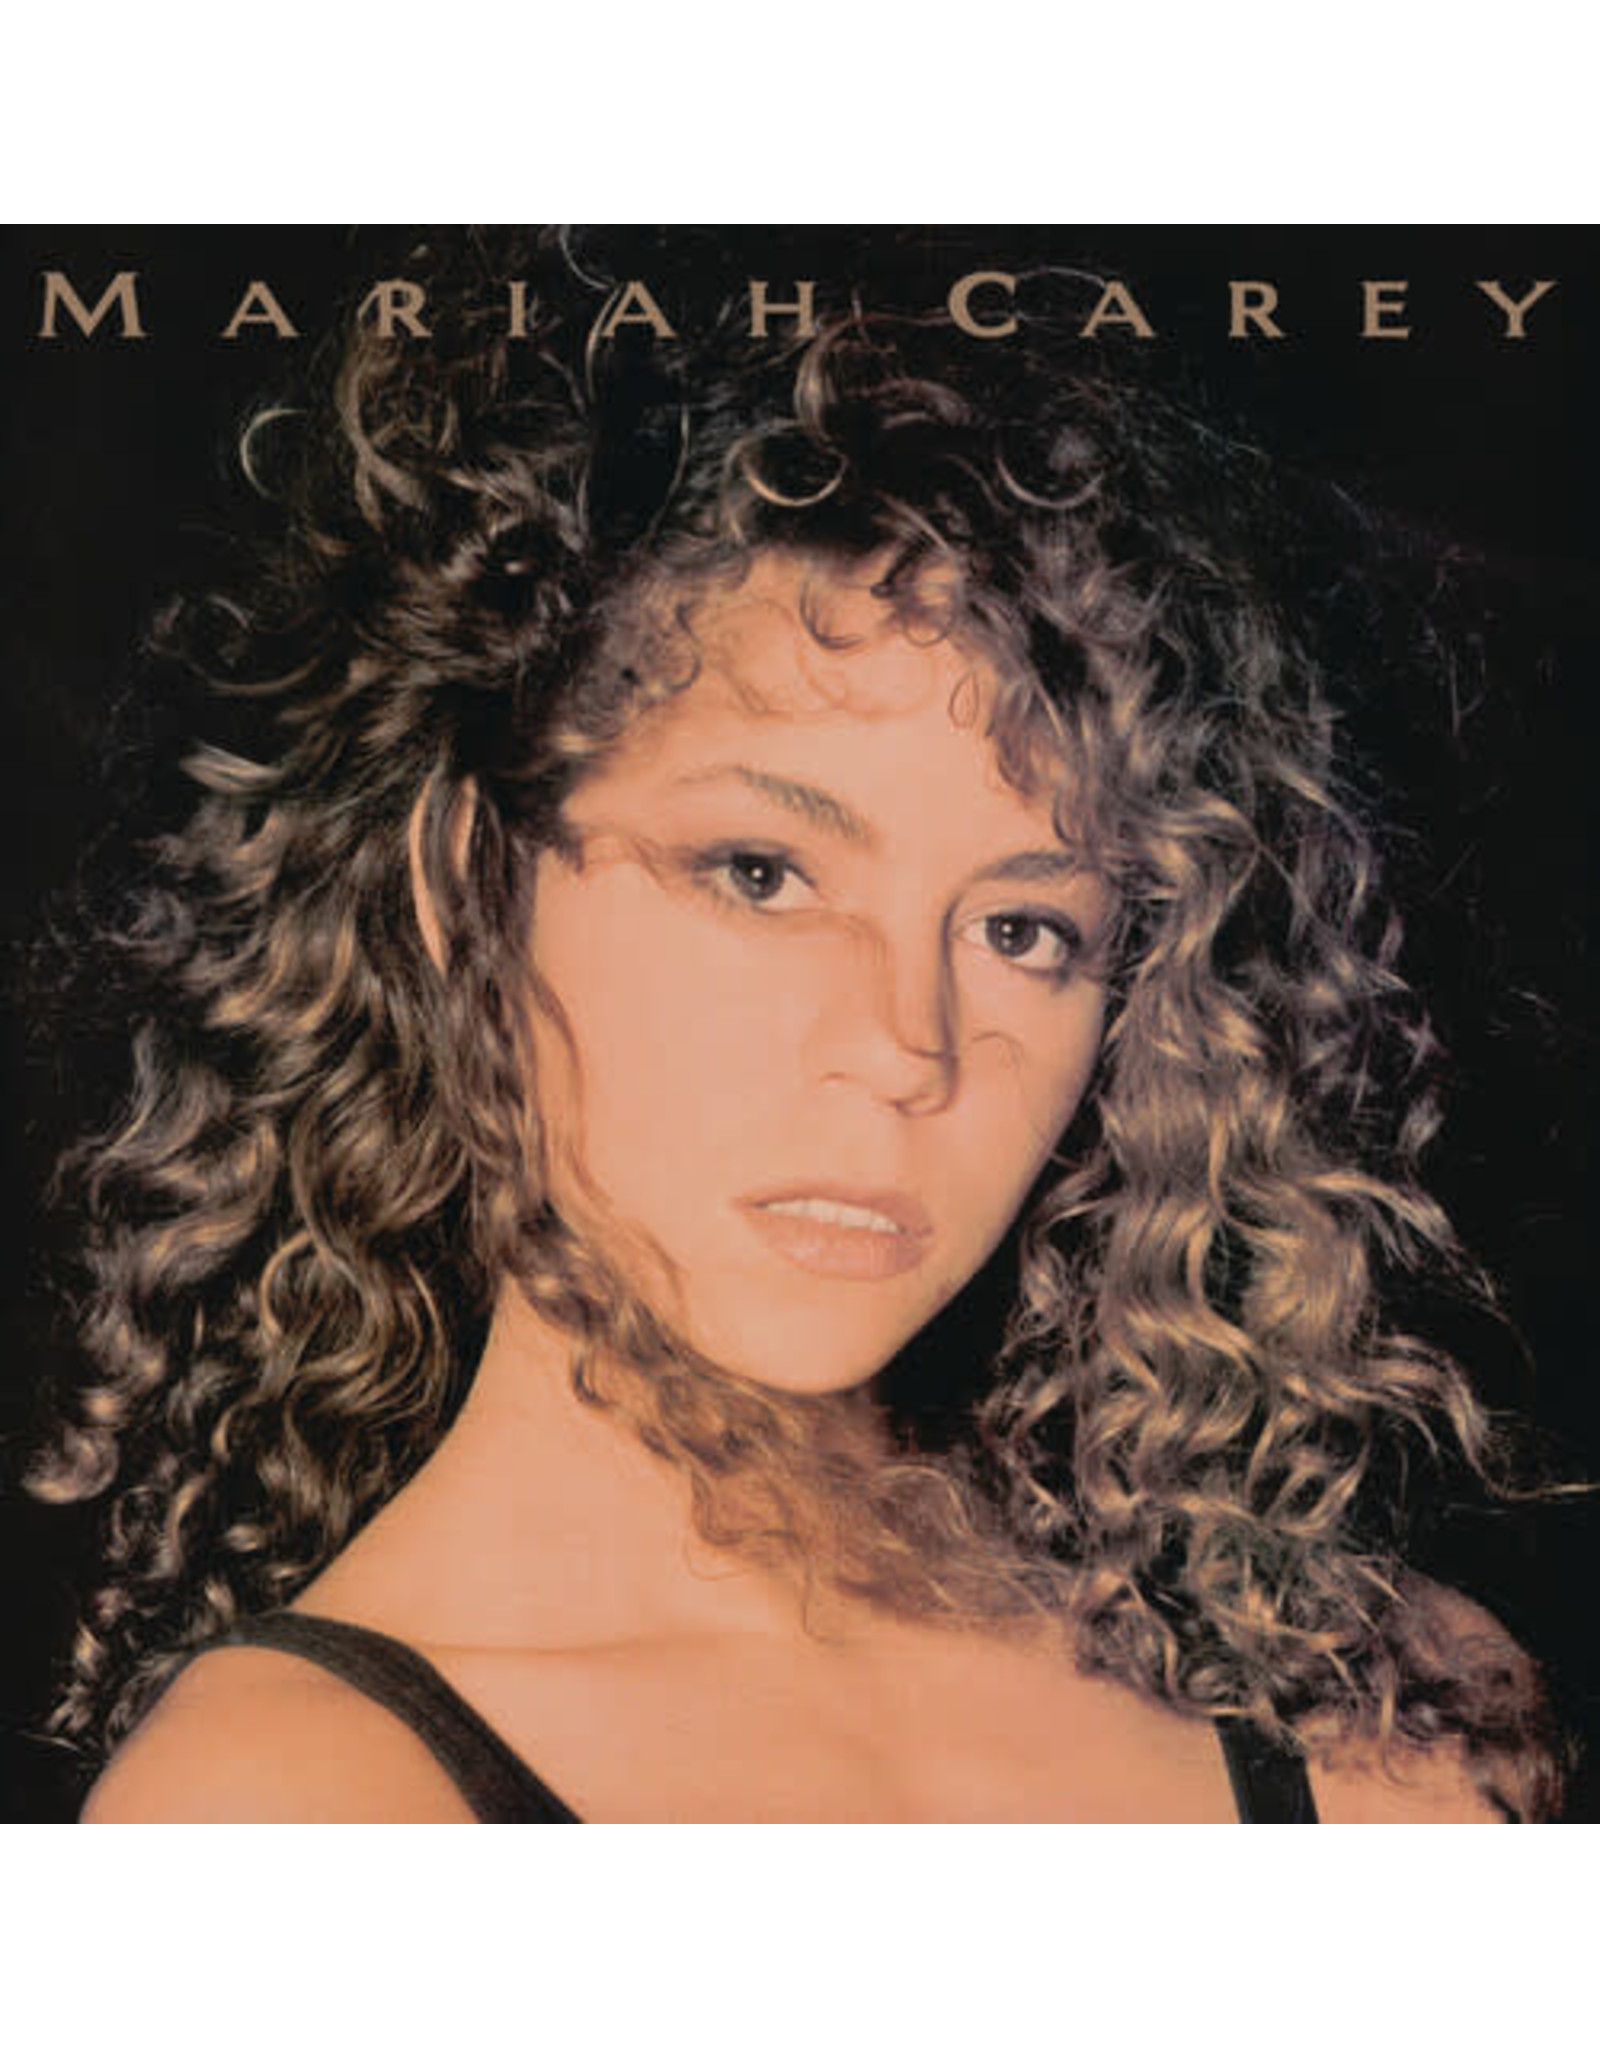 New Vinyl Mariah Carey - S/T LP